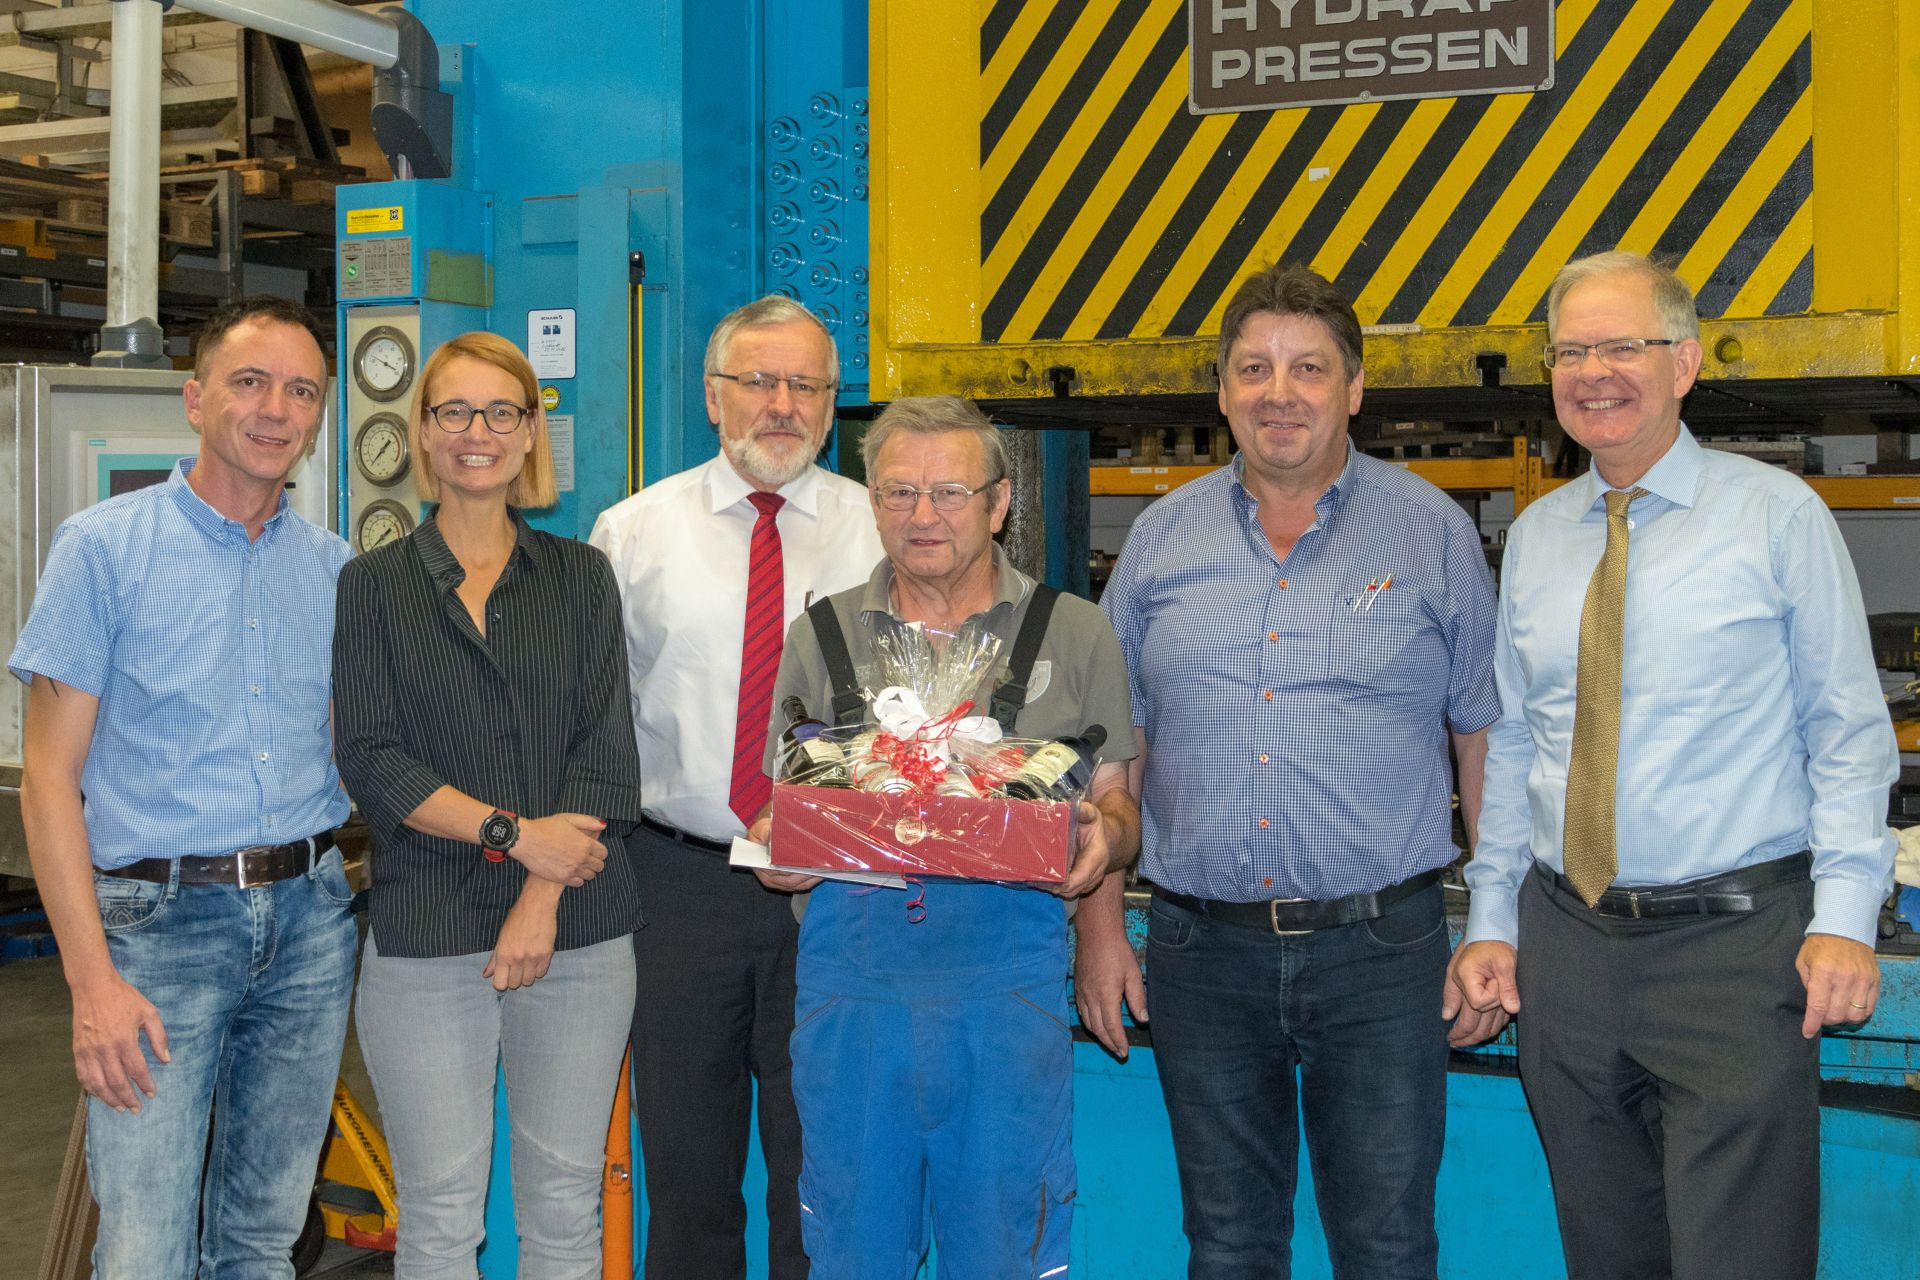 Golden Company Anniversary for Manfred Herbst